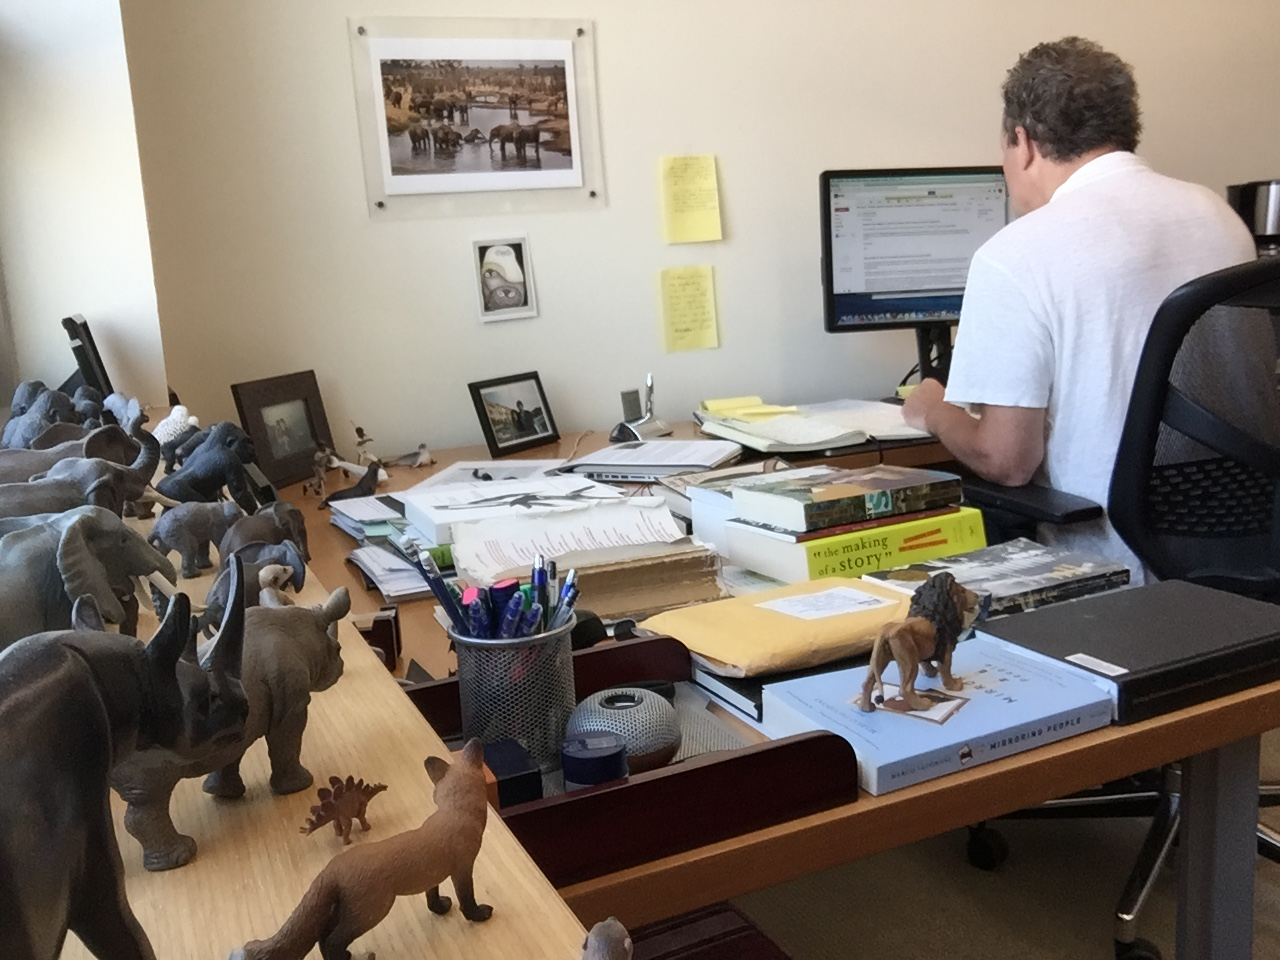 Siebert keeps his precious animal figurines on the windowsill of his office at NYU Abu Dhabi. Photo: Sebastián Cabral.